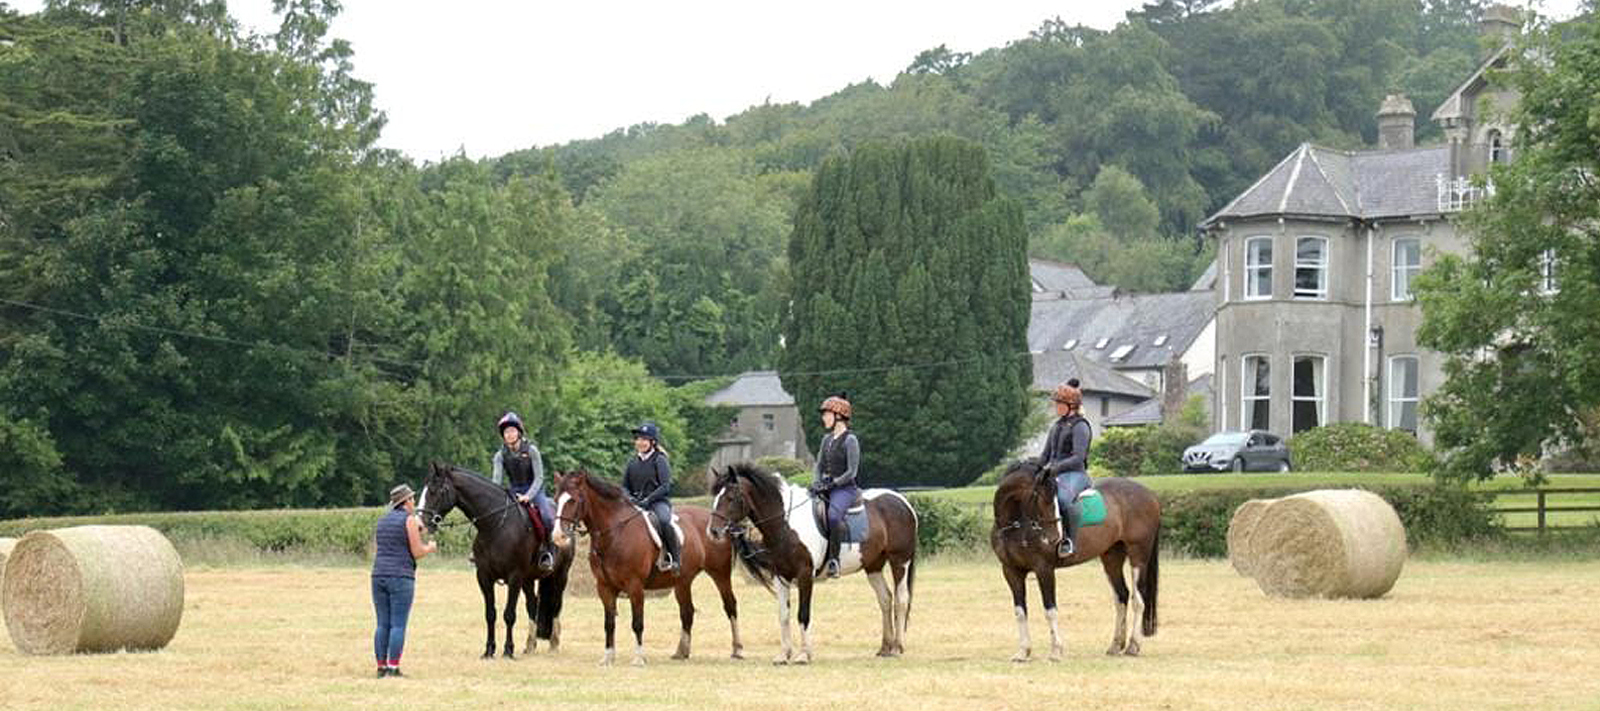 A horse riding lesson in front of Bel-Air Hotel Co. Wicklow Ireland